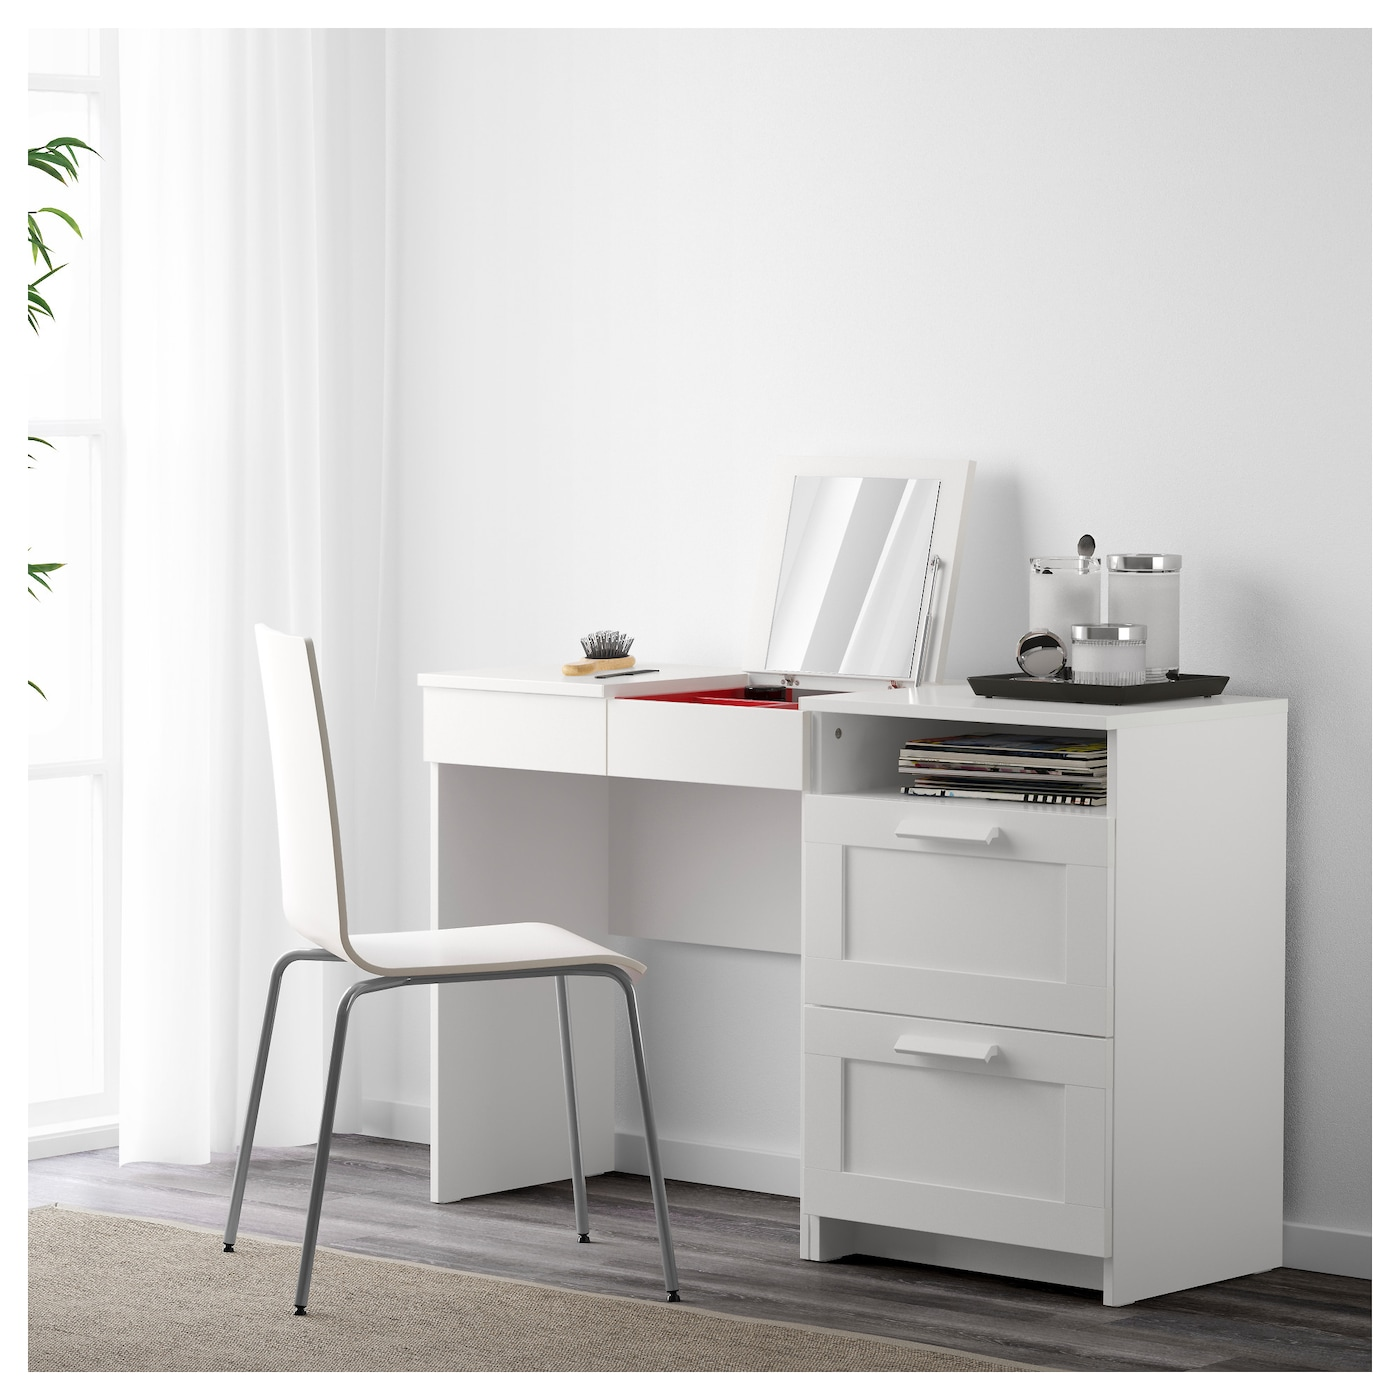 Brimnes dressing table chest of 2 drawers white ikea - Caisson dressing ikea ...